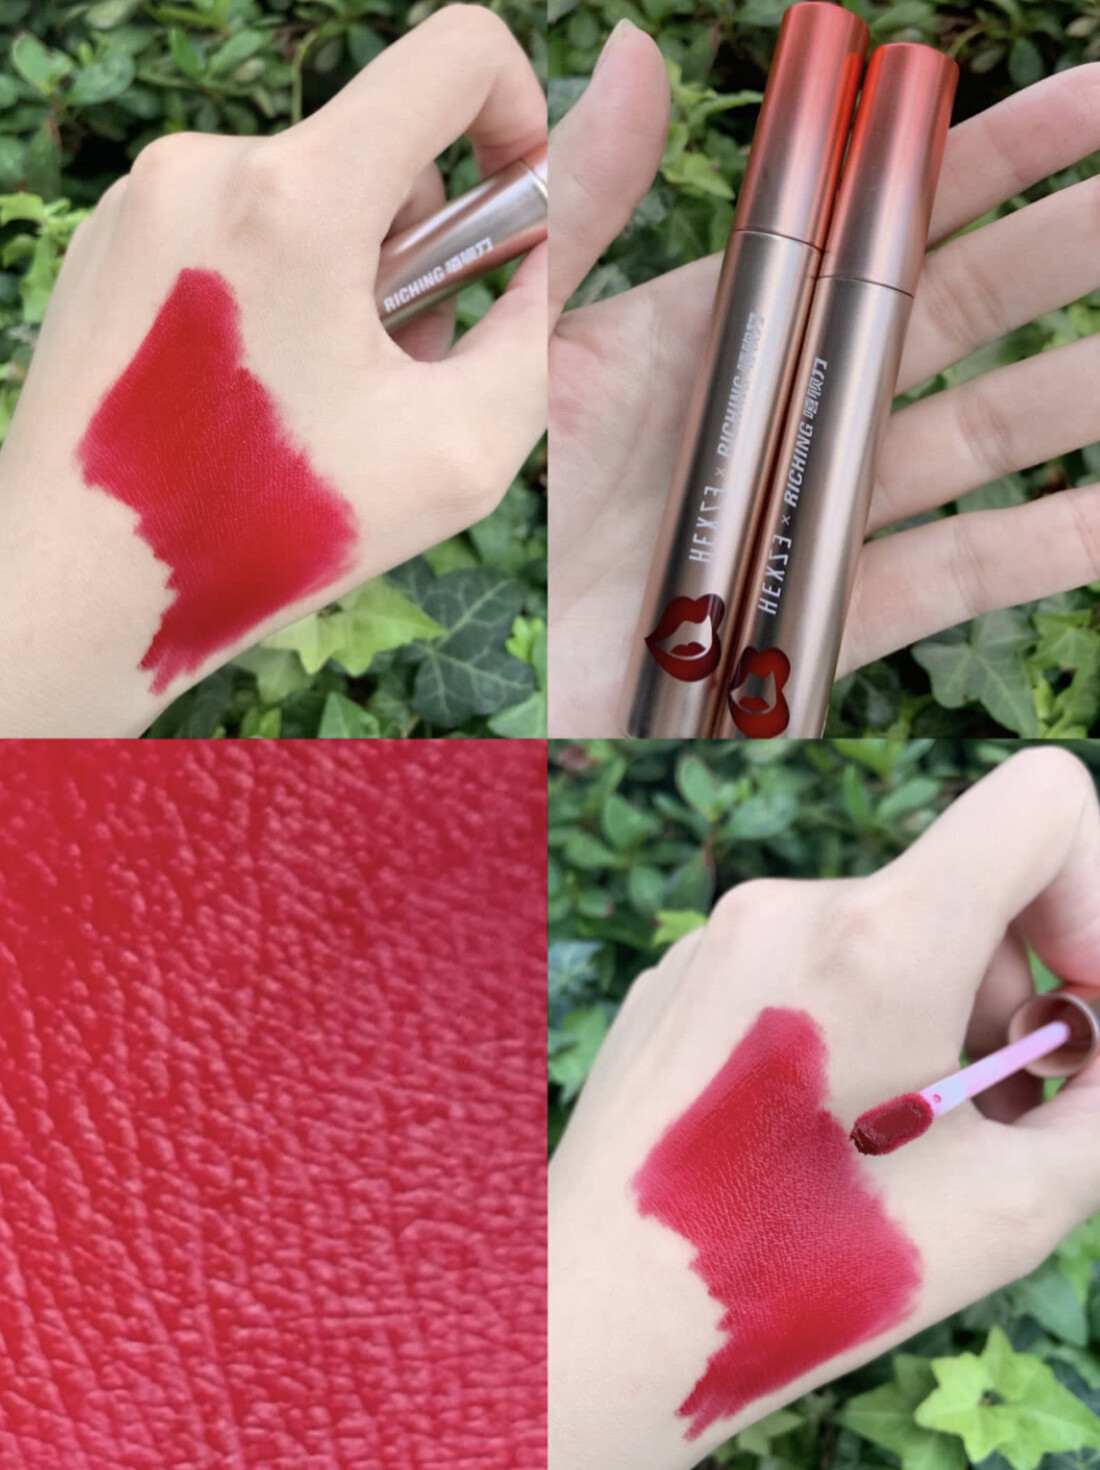 Han xi zhen hexze Hey Drink of Combined Action ming kuan Limited Edition Matte Lip Glaze M71 Berry Problem M72 Attractive Pulp Red